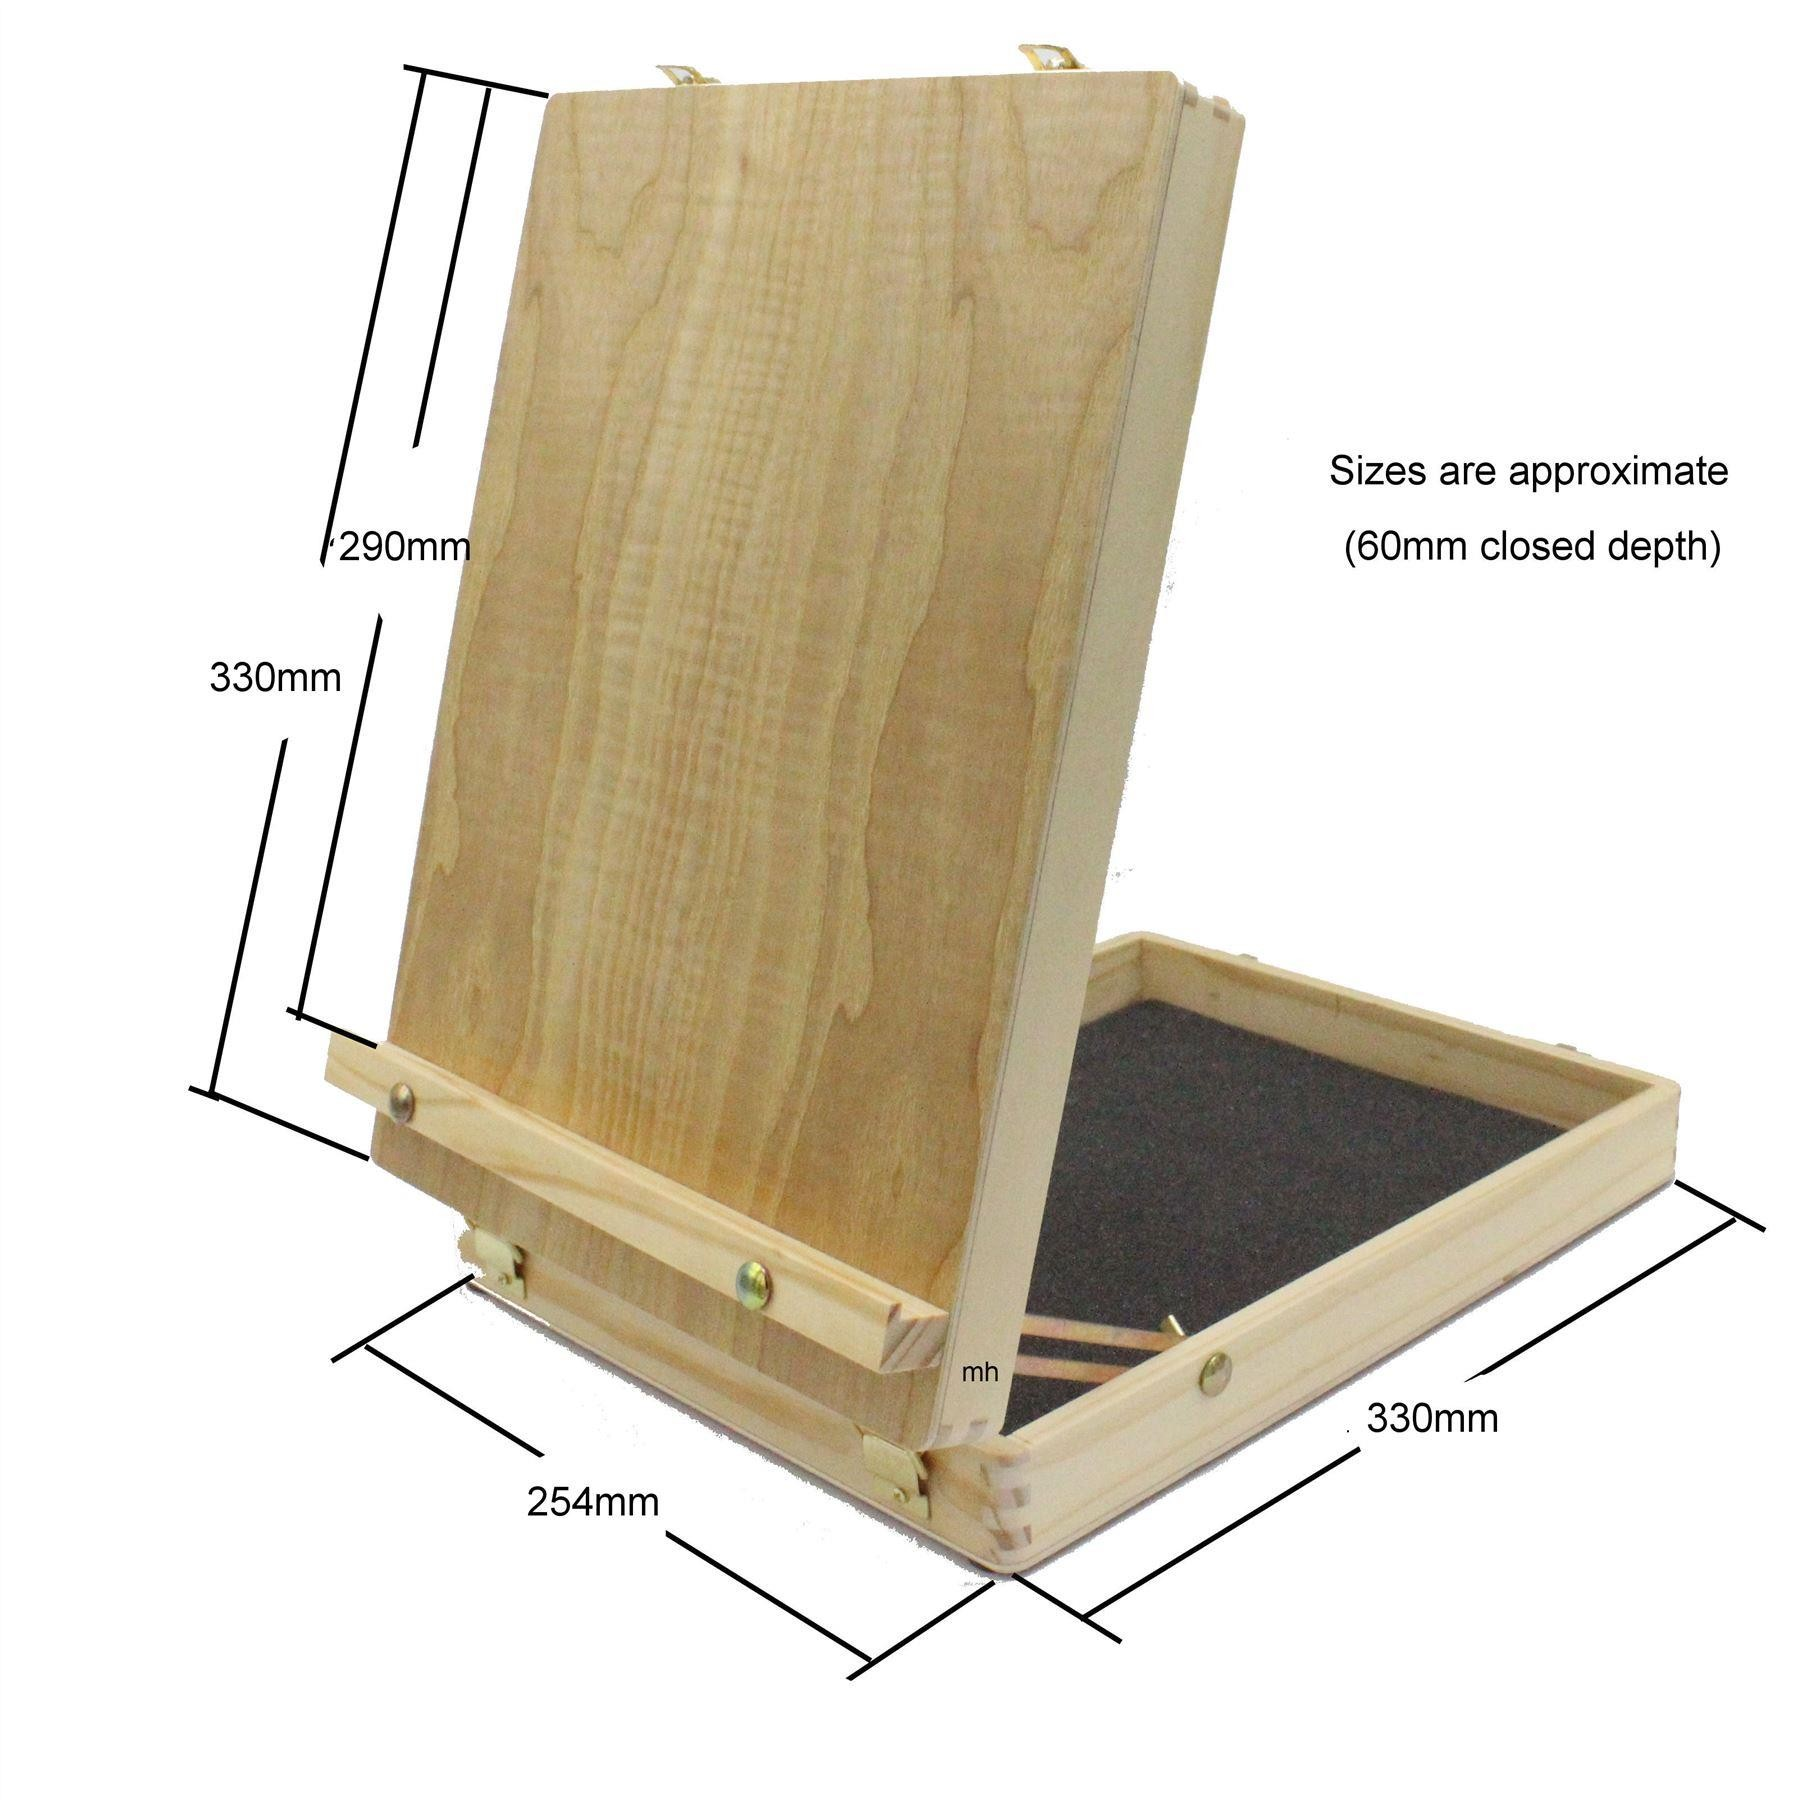 sizes of artists wooden table top easel